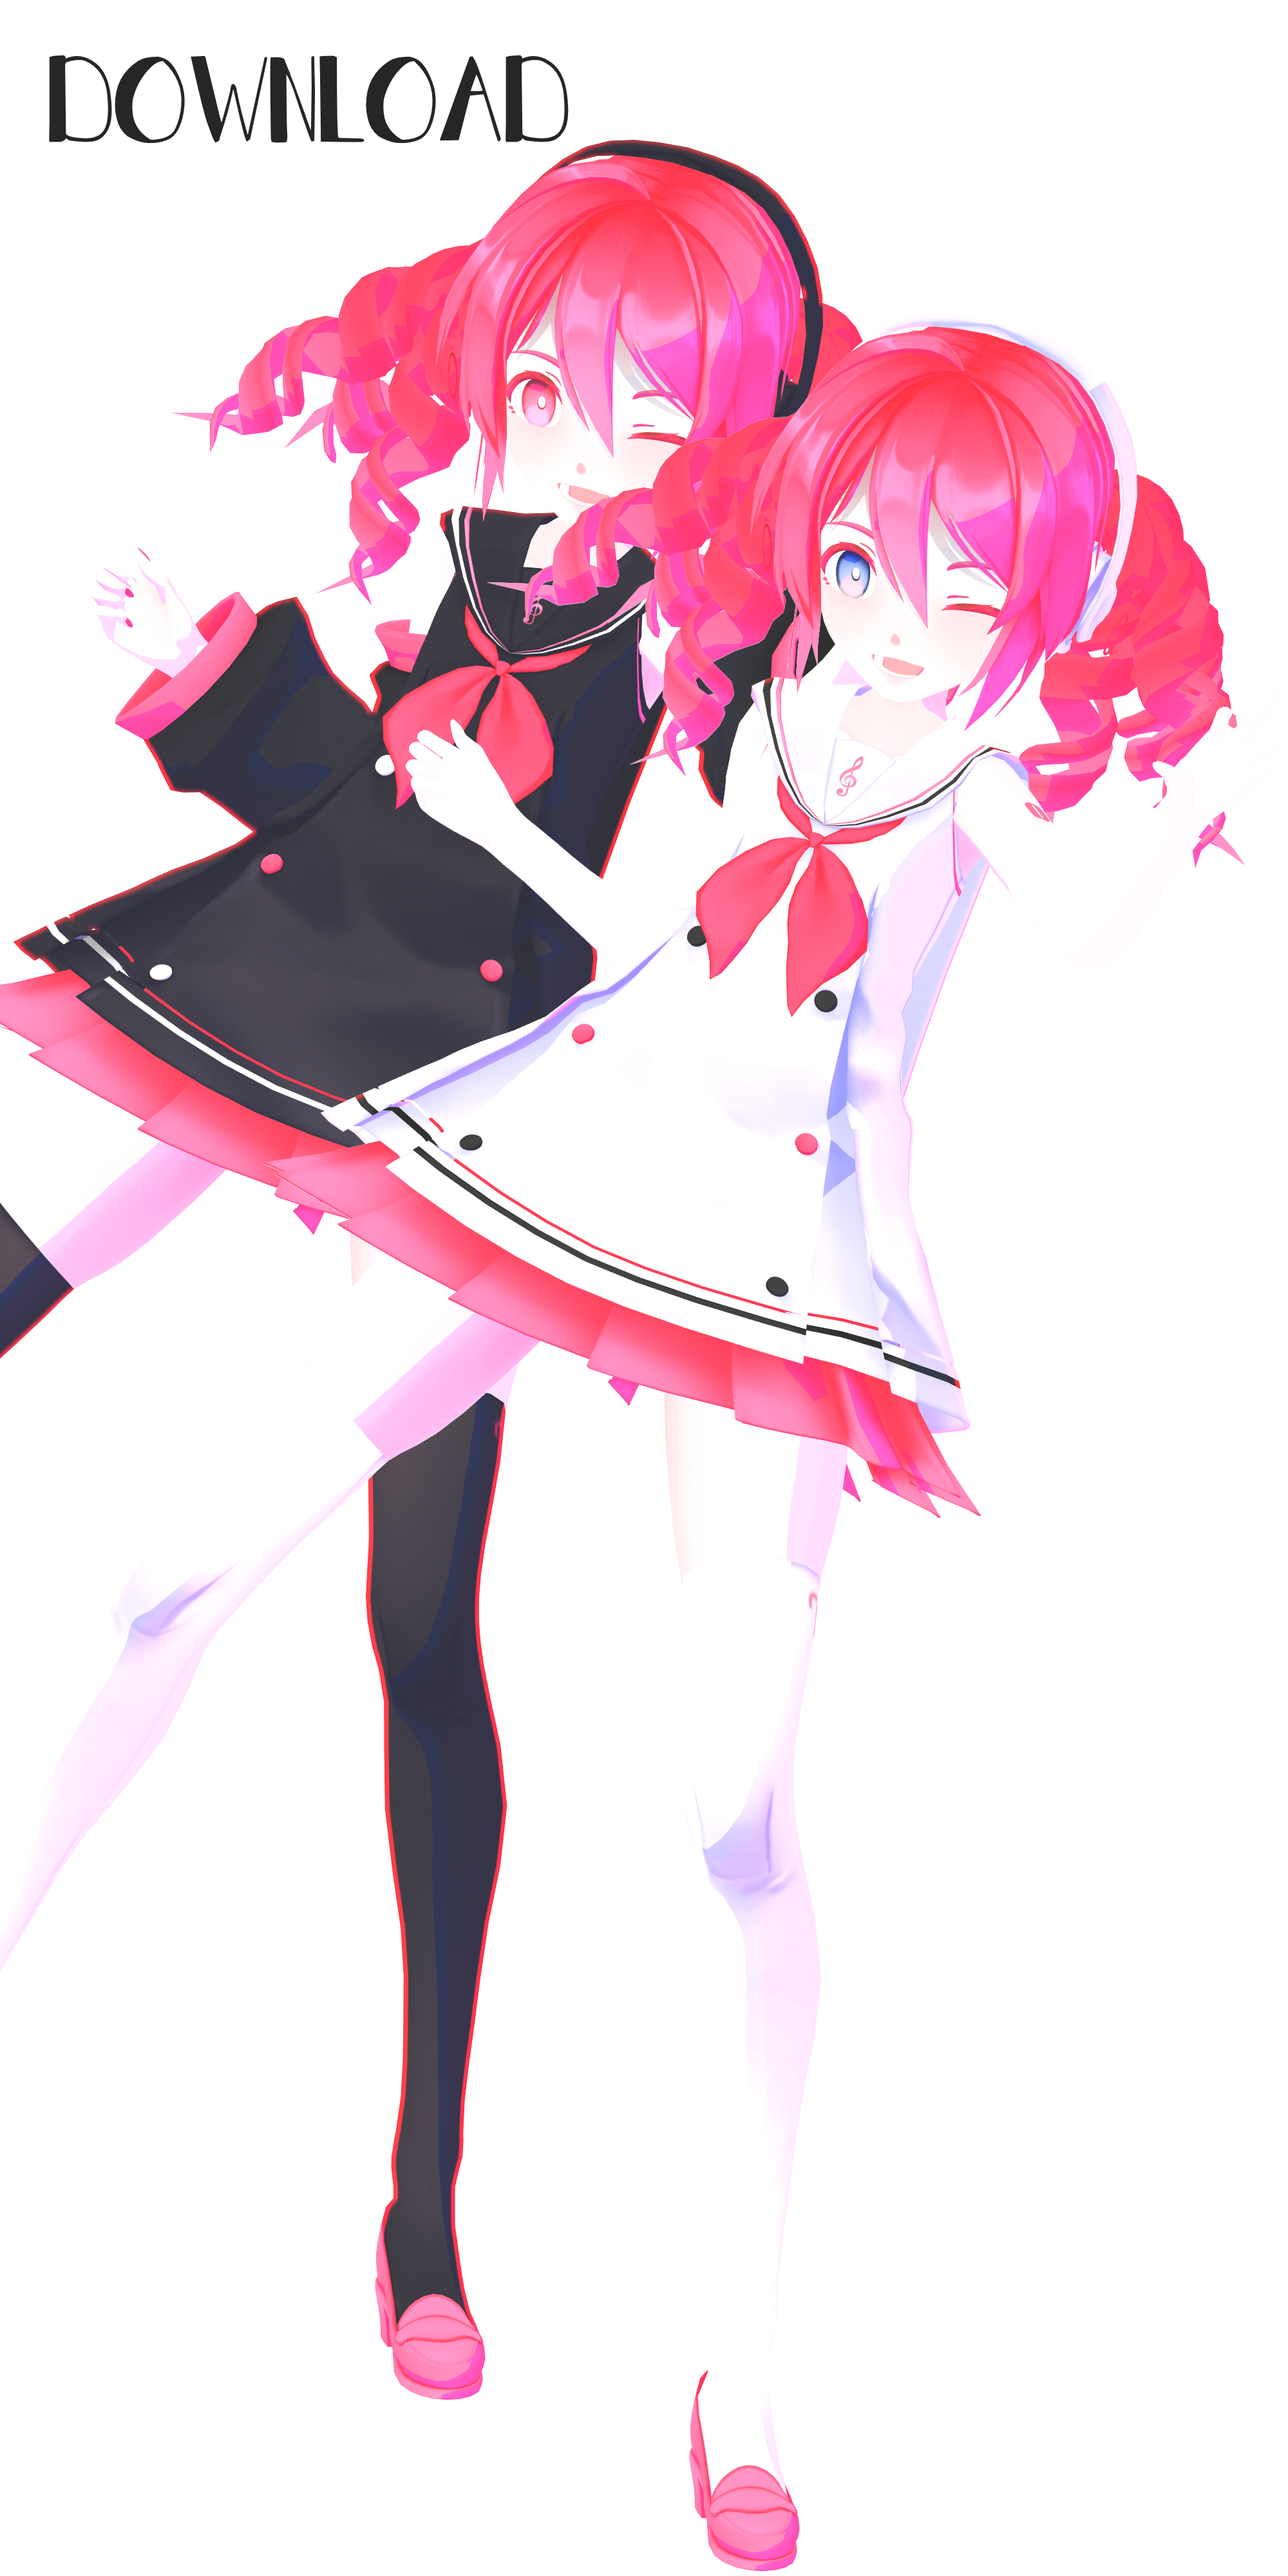 mmd dl : sour teto 04 by dancingfishyy on DeviantArt